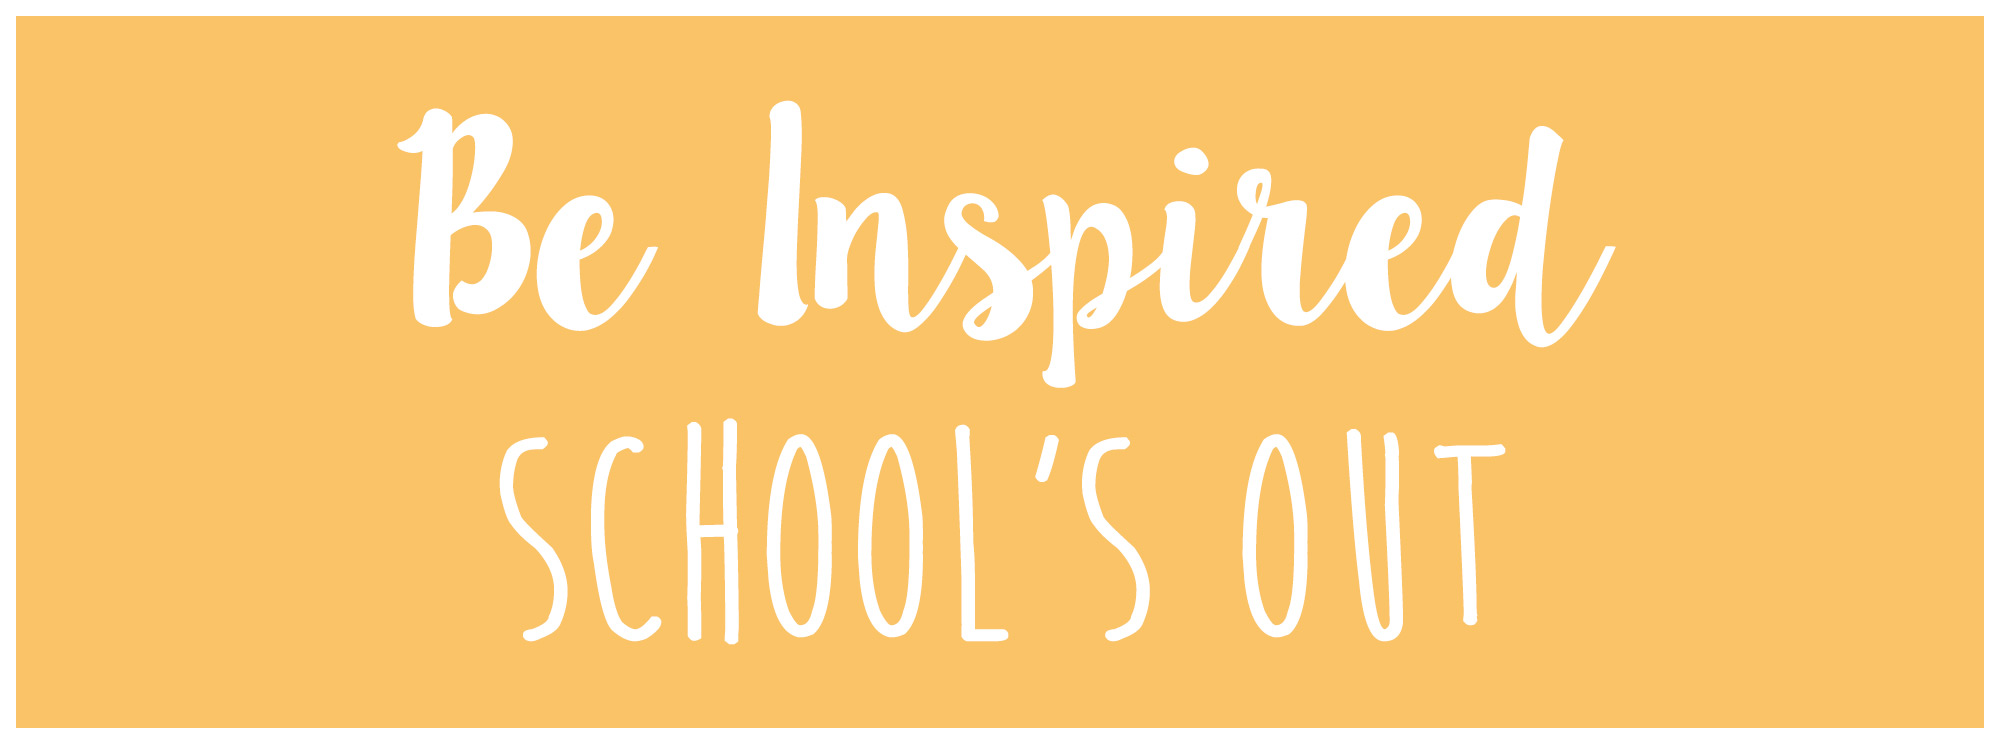 Be Inspired School's Out